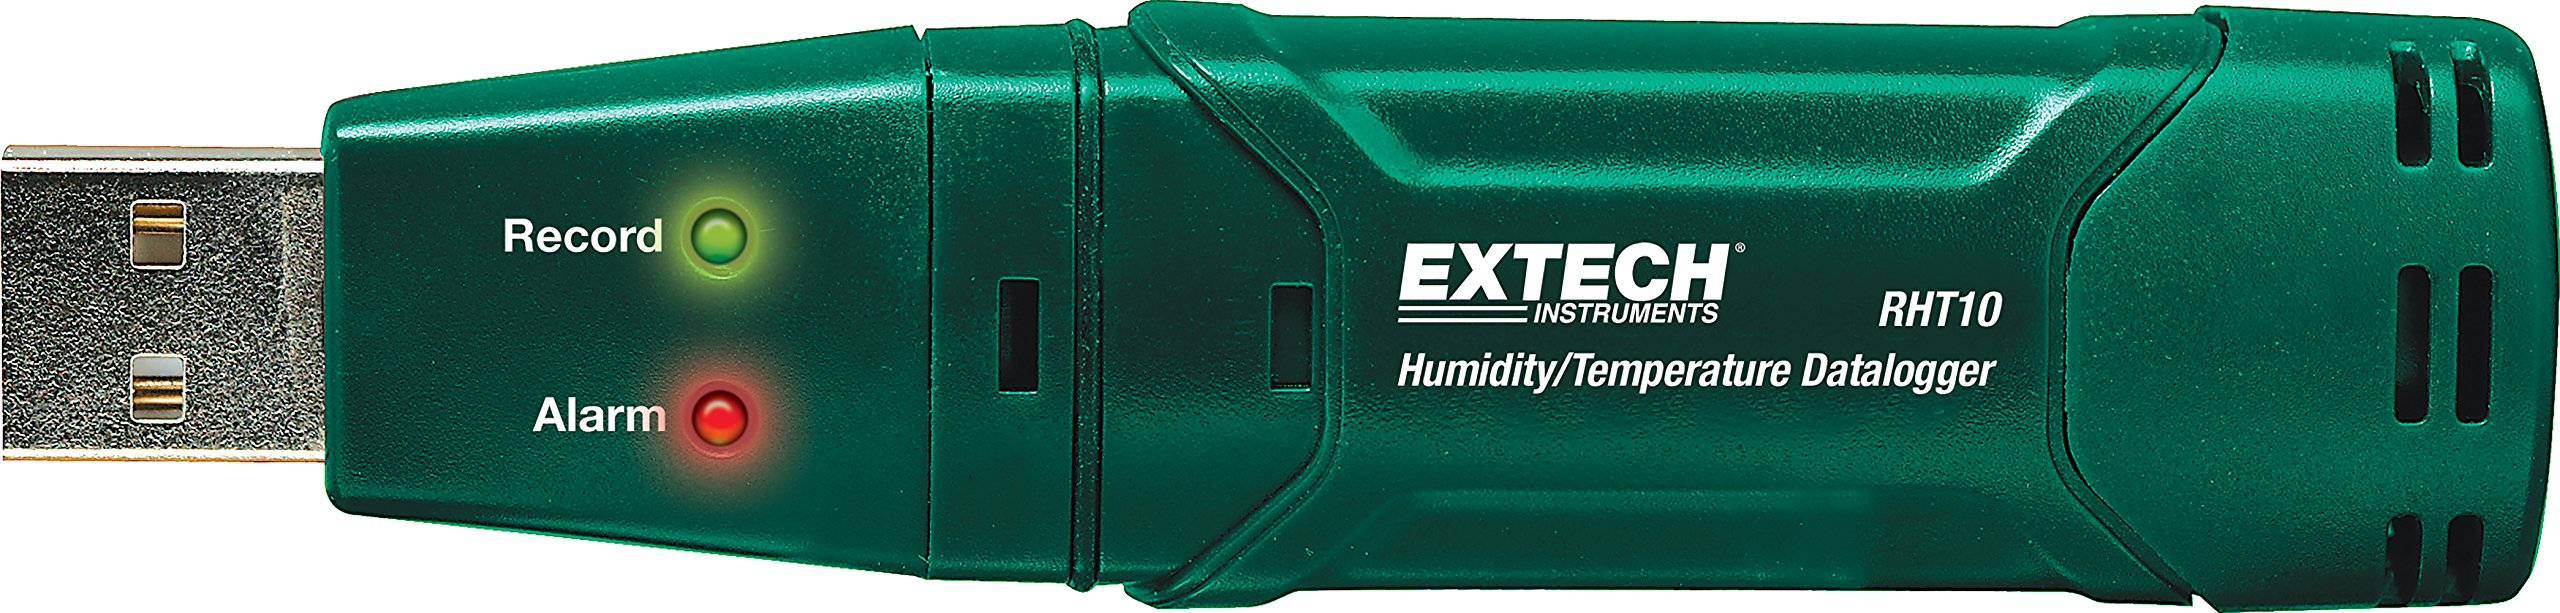 Extech RHT10 Humidity And Temperature USB Datalogger by Extech Instruments